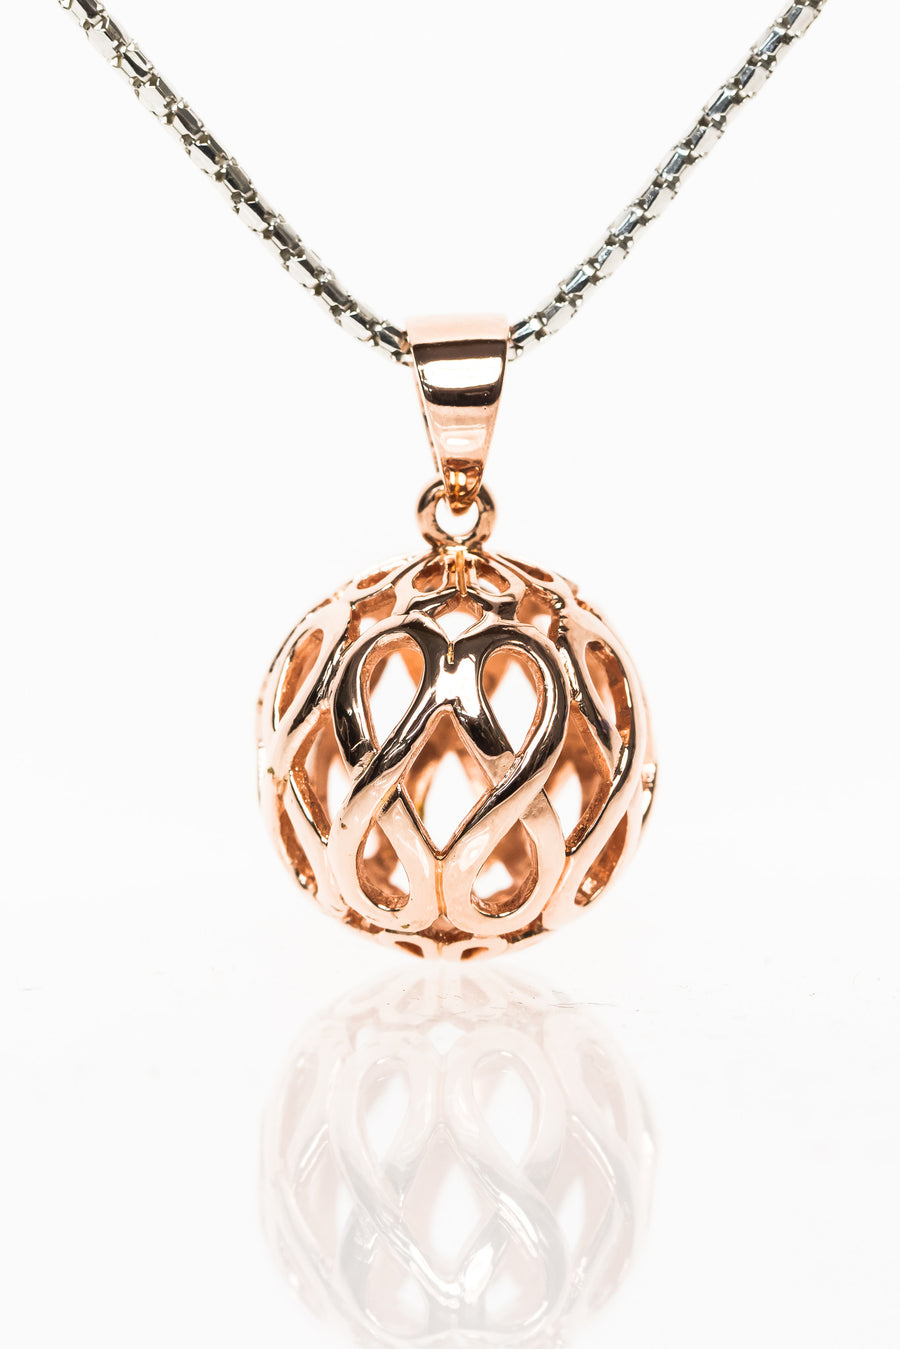 Rose Gold Orb Pendant from Infinity Range